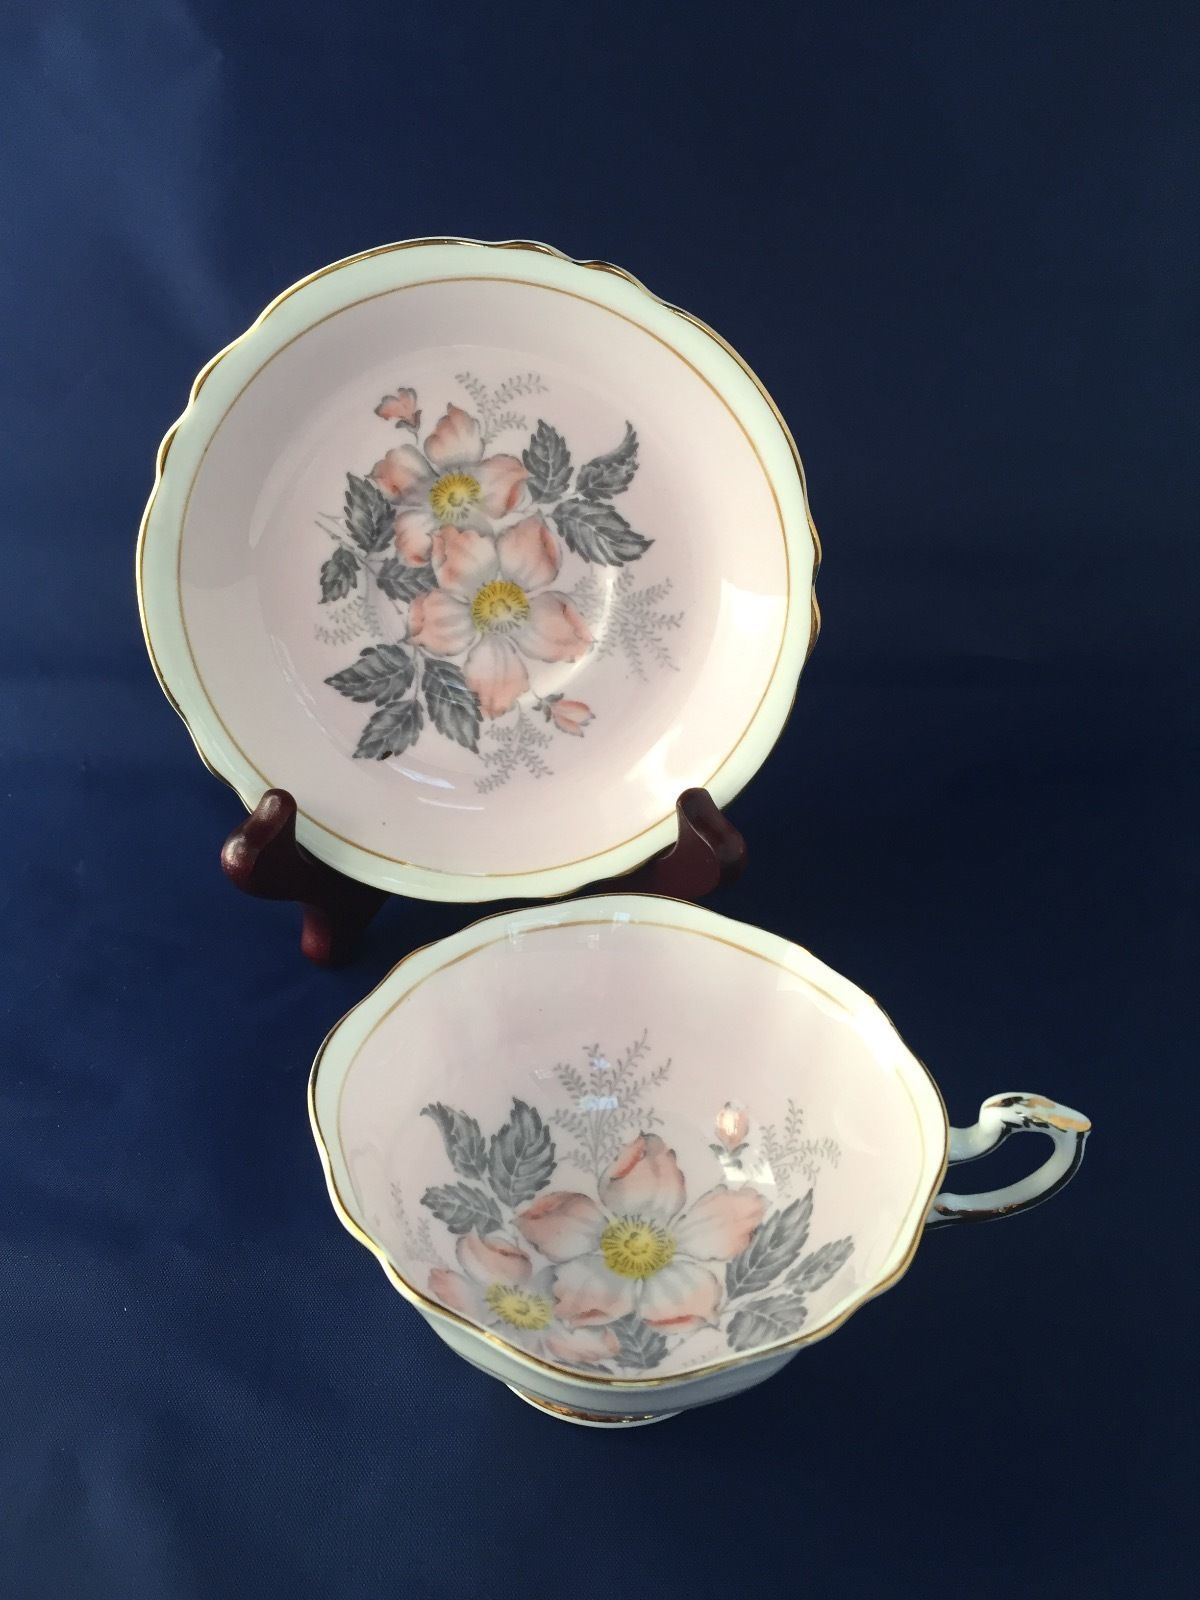 Royal albert bone china tea cup amp saucer winsome pattern ebay - Paragon Tea Cup And Saucer With Pink Gray Flowers Queen Mary England